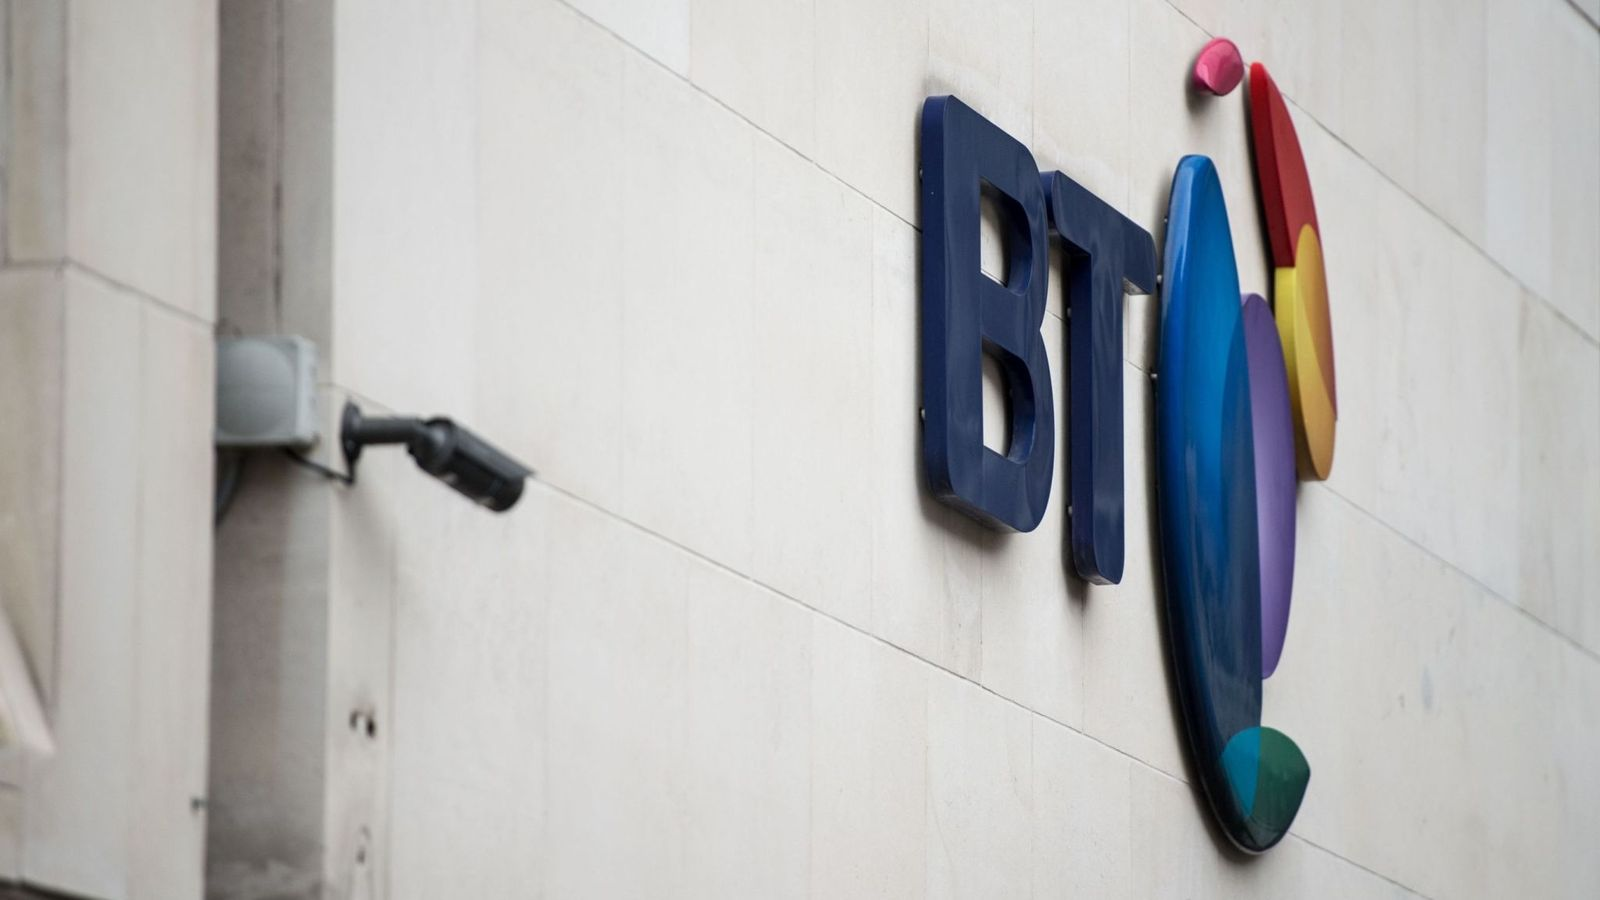 BT to cut 13,000 jobs and ditch central London HQ